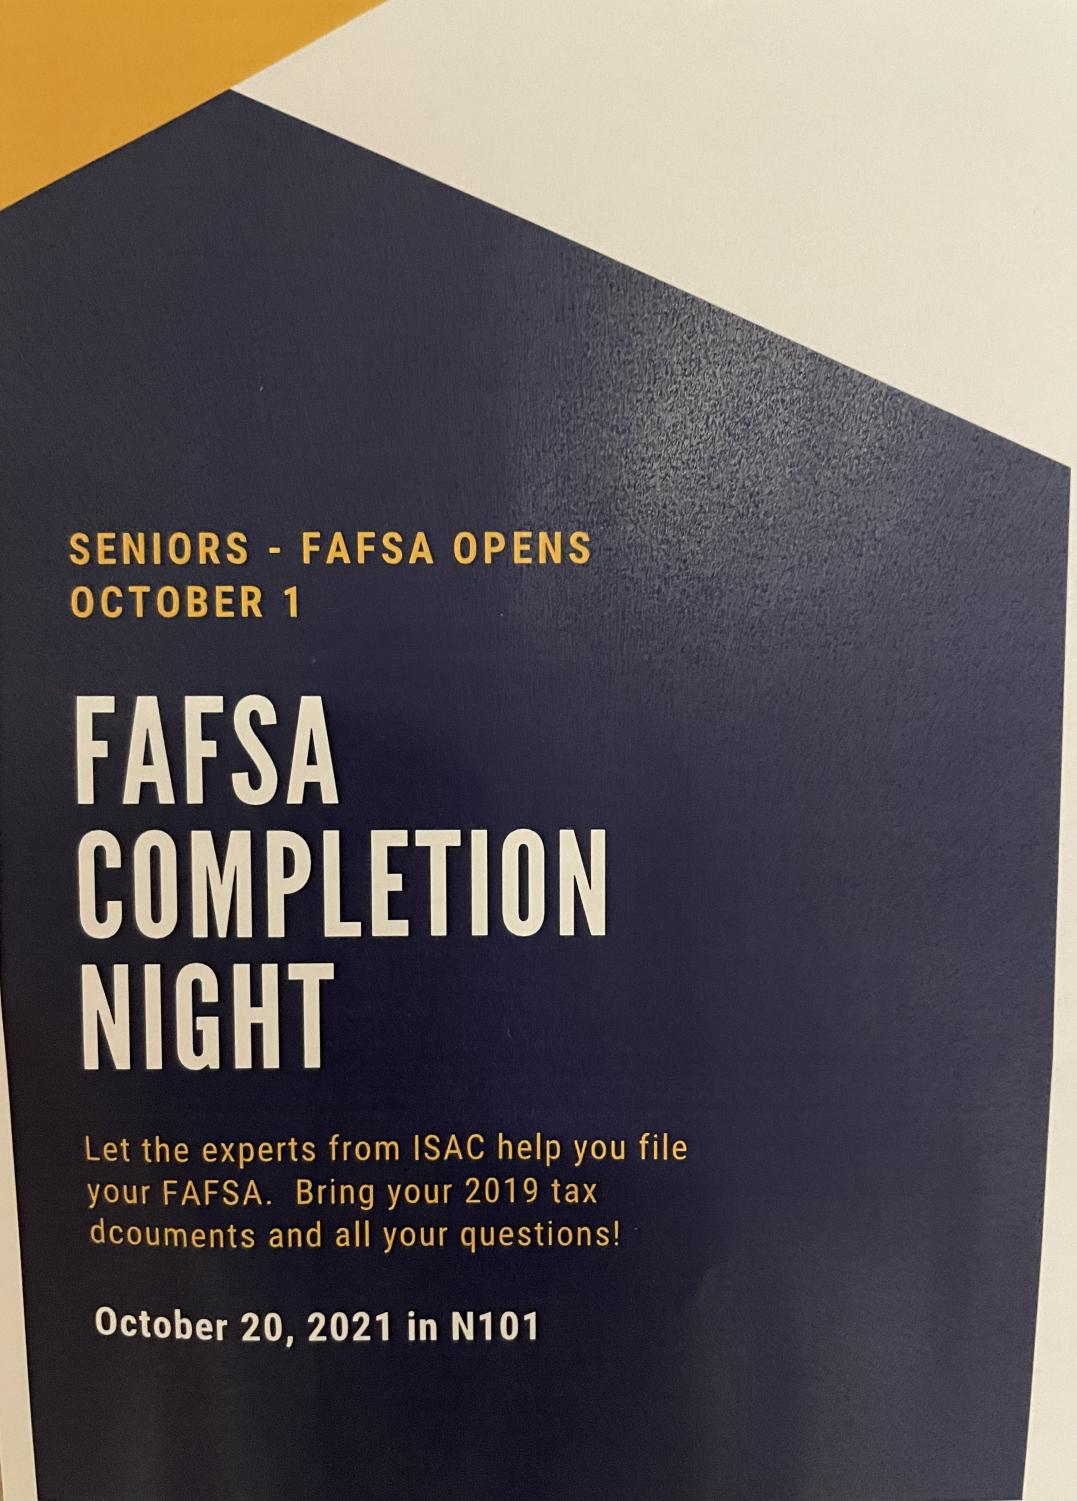 Flyers hung around the school inform students of the upcoming FAFSA night